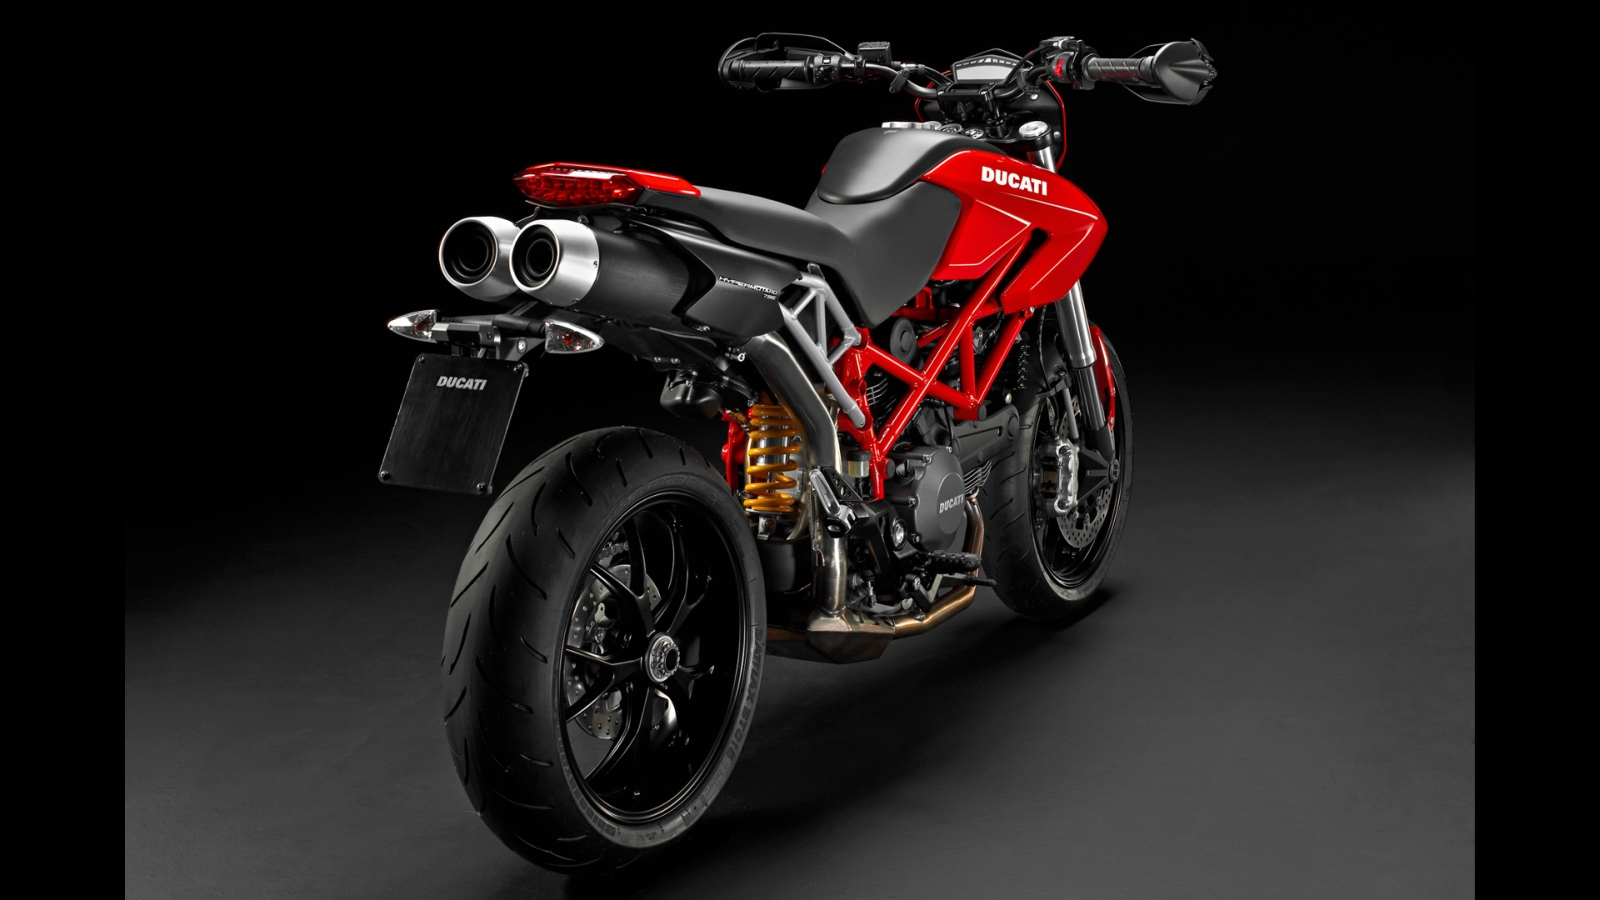 2010 ducati hypermotard 796 moto zombdrive com. Black Bedroom Furniture Sets. Home Design Ideas